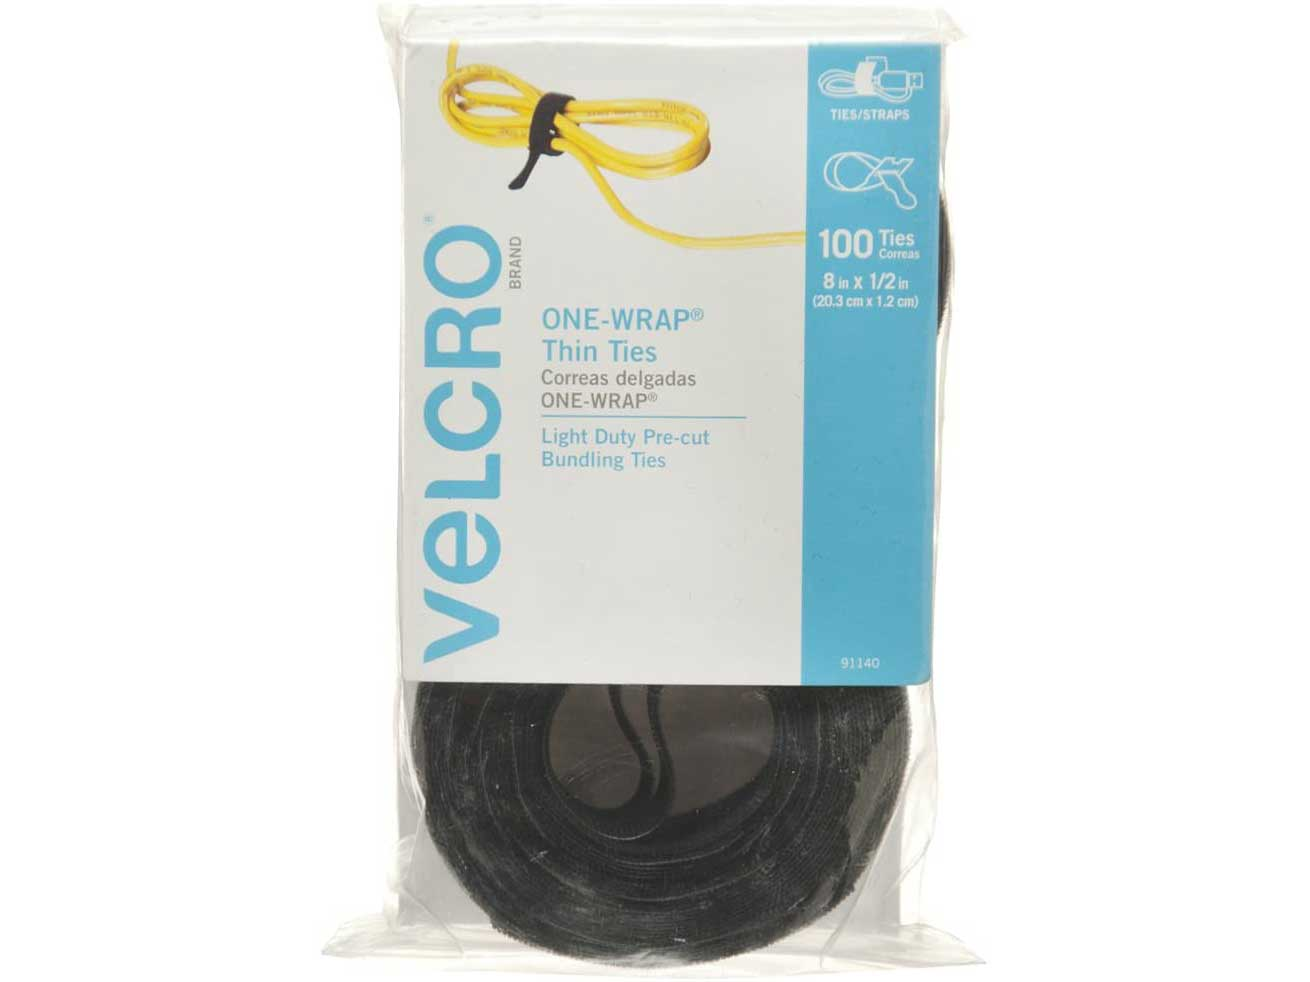 VELCRO Brand ONE-WRAP Cable Ties | 100Pk | 8 x 1/2